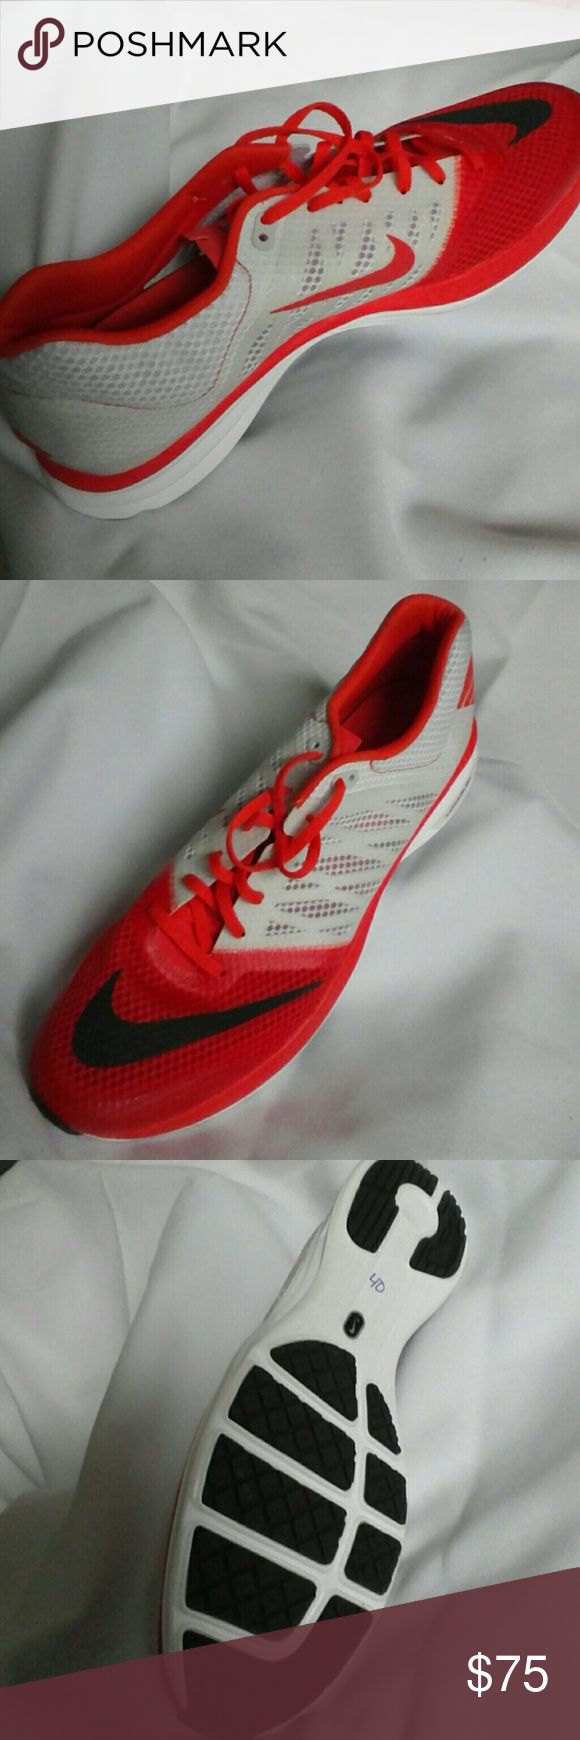 1000 ideas about nike lunar on ohio state